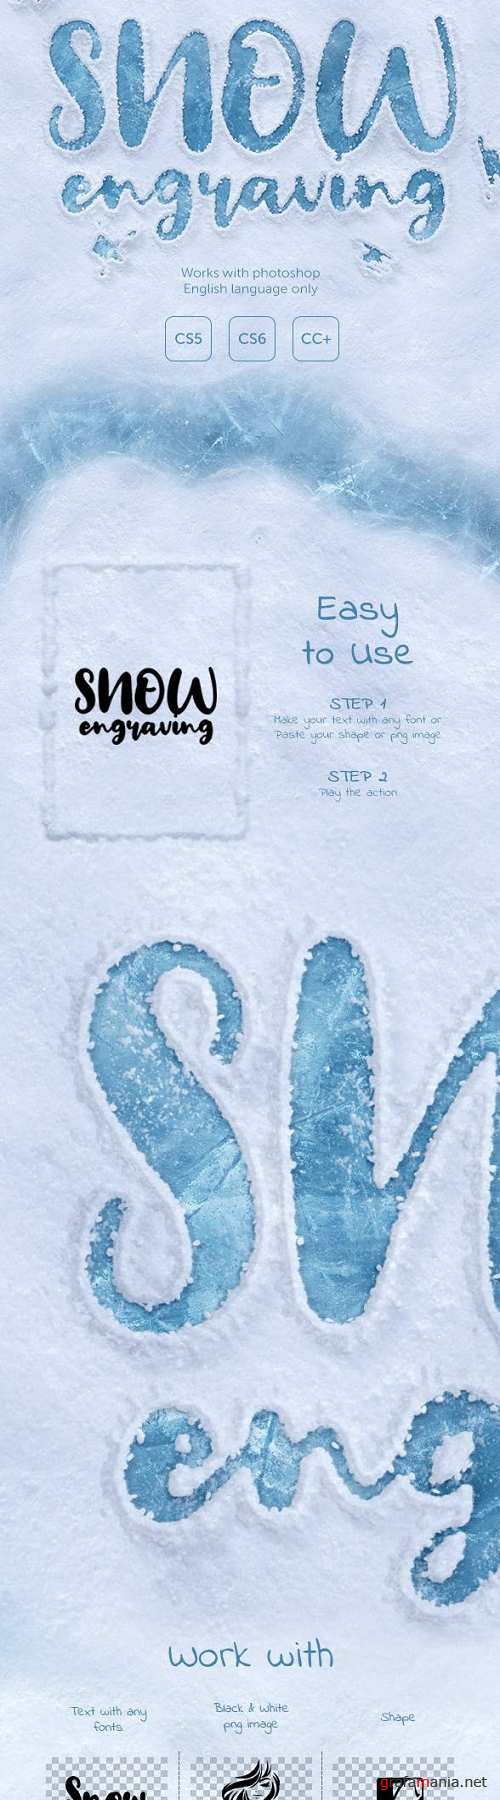 Snow Engraving Photoshop Action 23113670